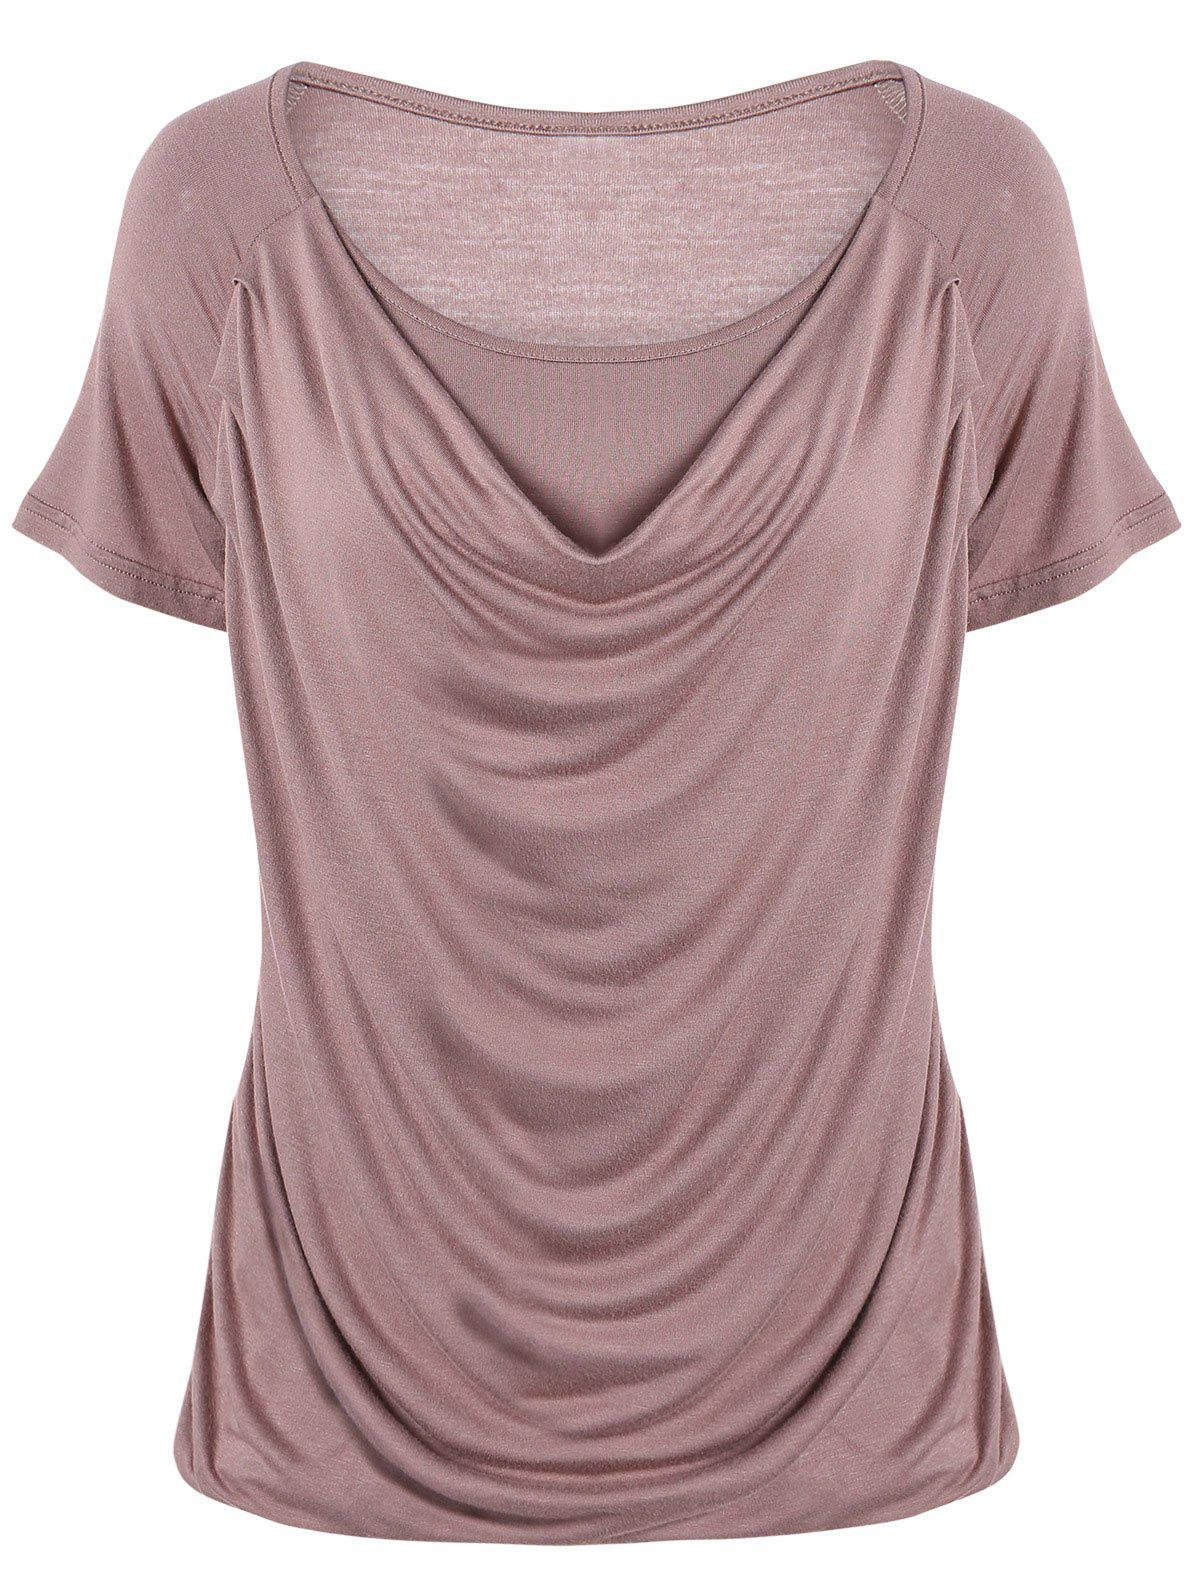 Ruched Plain Ruffled T-ShirtWOMEN<br><br>Size: XL; Color: KHAKI; Material: Cotton Blends; Shirt Length: Regular; Sleeve Length: Short; Collar: Scoop Neck; Style: Fashion; Season: Summer; Pattern Type: Solid; Weight: 0.200kg; Package Contents: 1 x T-Shirt;